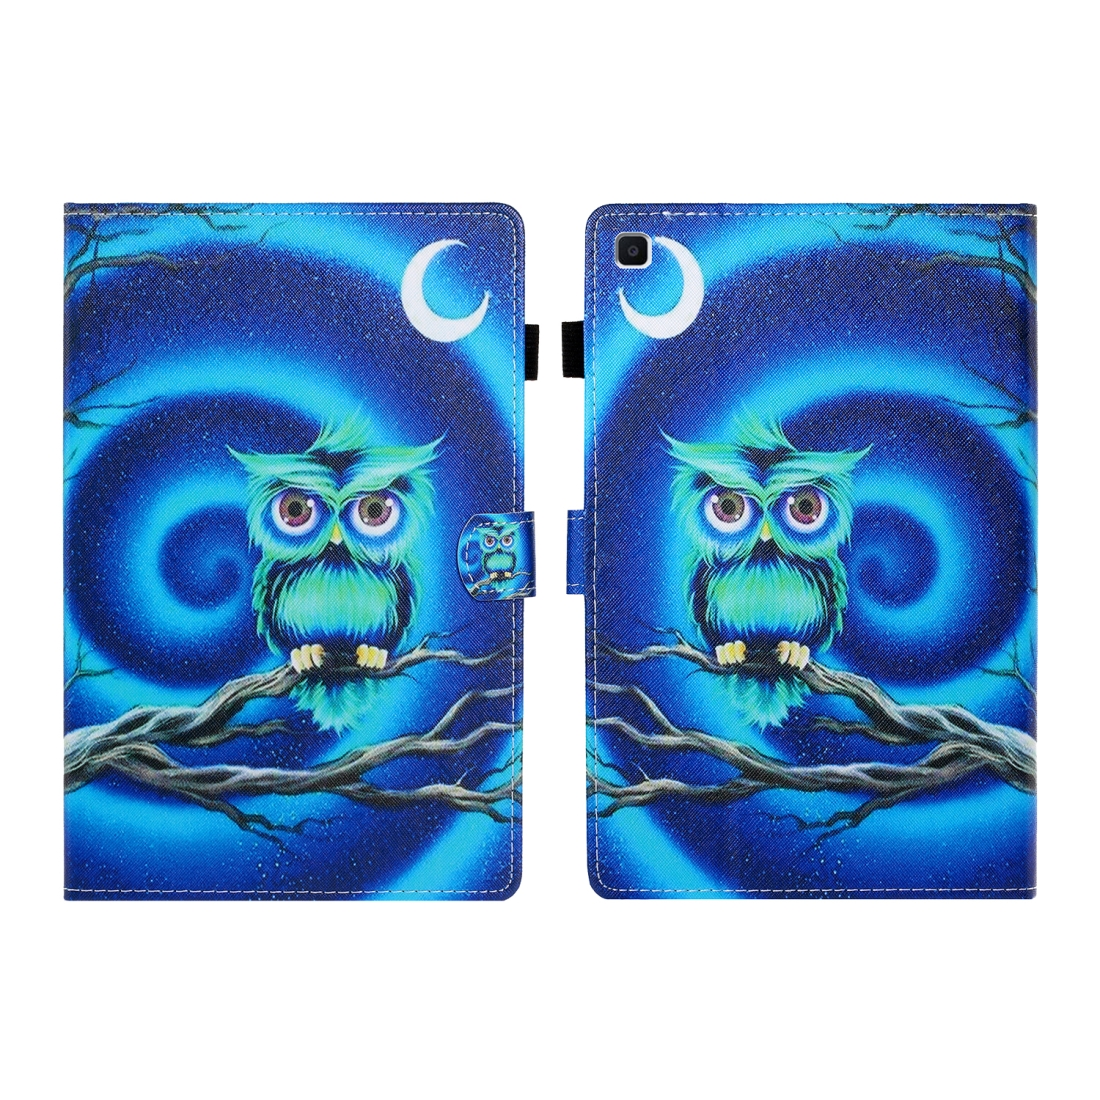 Sewing Thread Left and Right Flat Leather Case with Pen Cover & Card Slot & Buckle Anti-skid Strip and Bracket (Moon Owl)